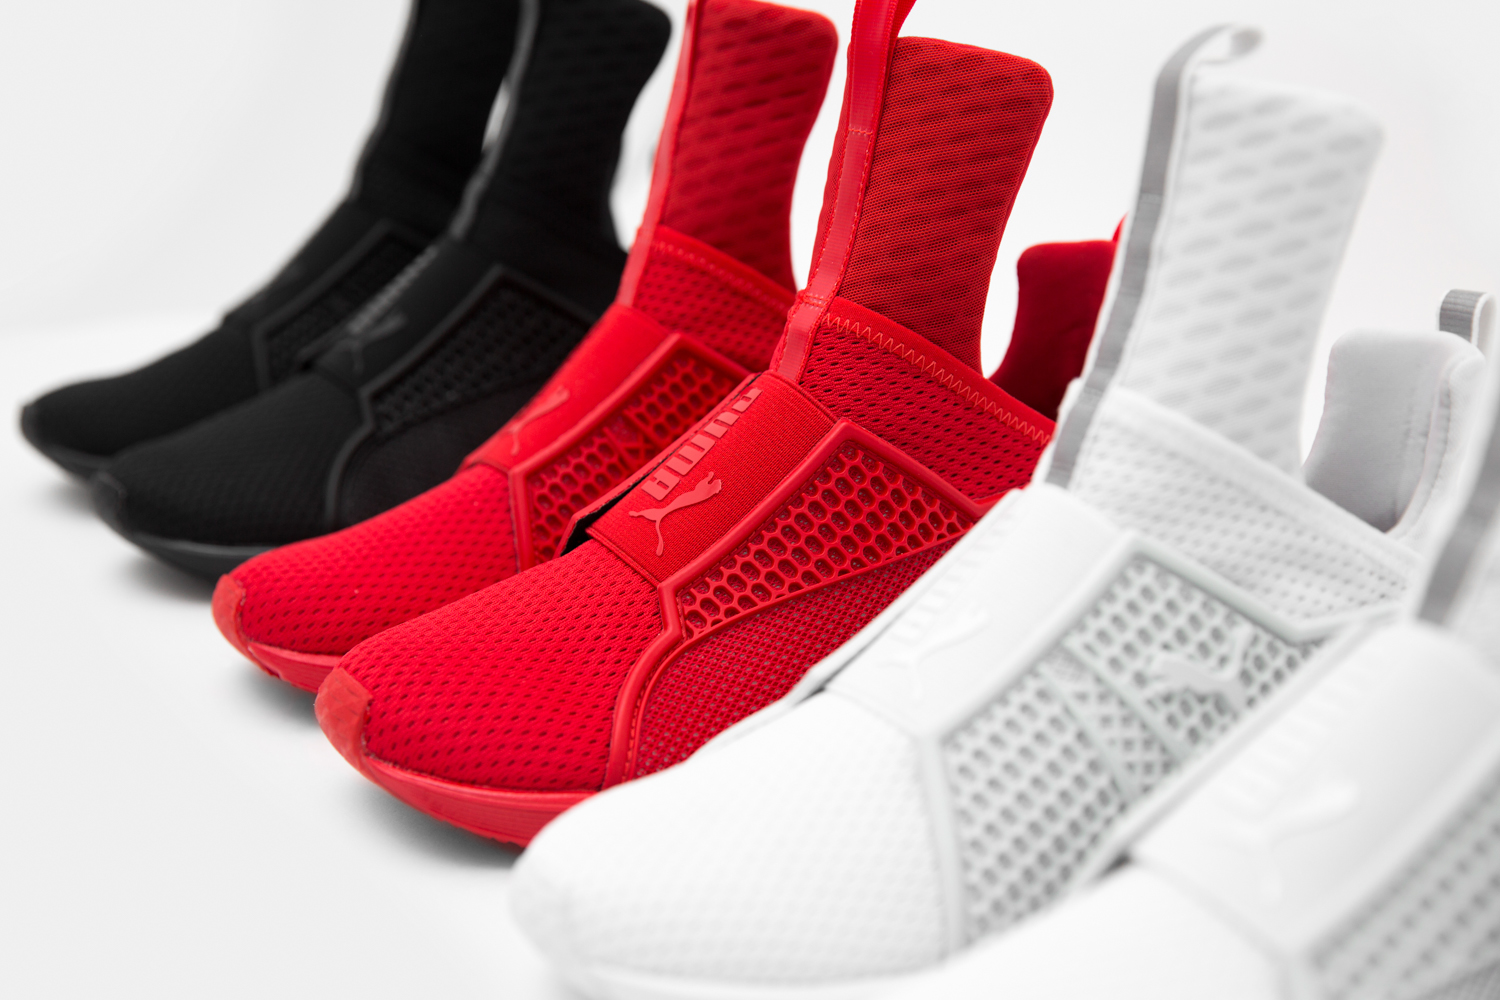 ... by rihanna 9f3f7 c30c6 usa puma fenty trainer by rihanna 9f3f7 c30c6  canada  rihannas new fenty x puma trainers are already sold out thefashionspot ... af83550b5